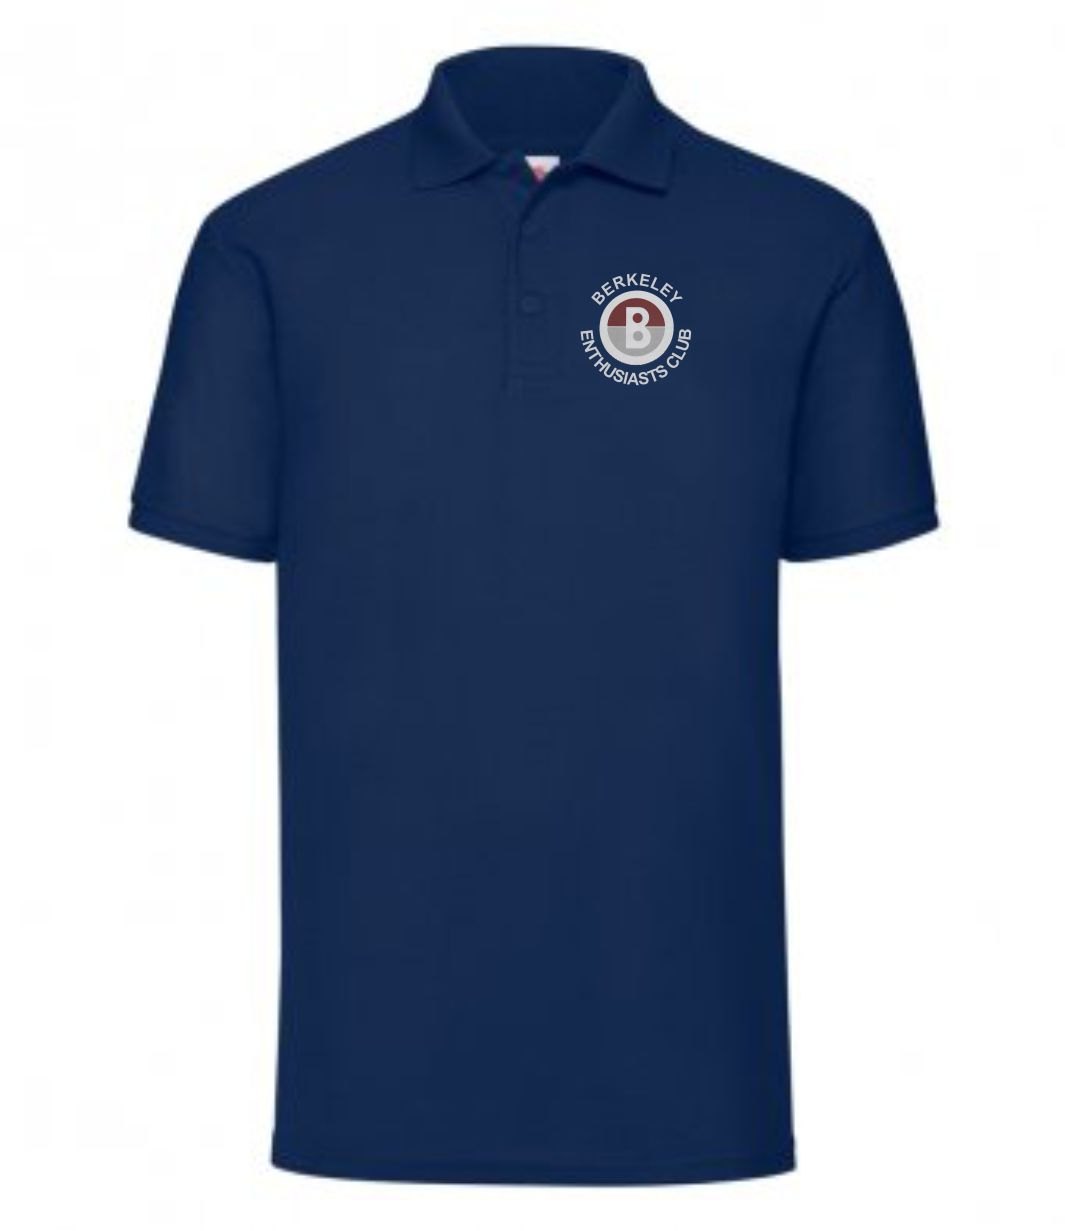 Berkeley Enthusiasts Club polo shirt